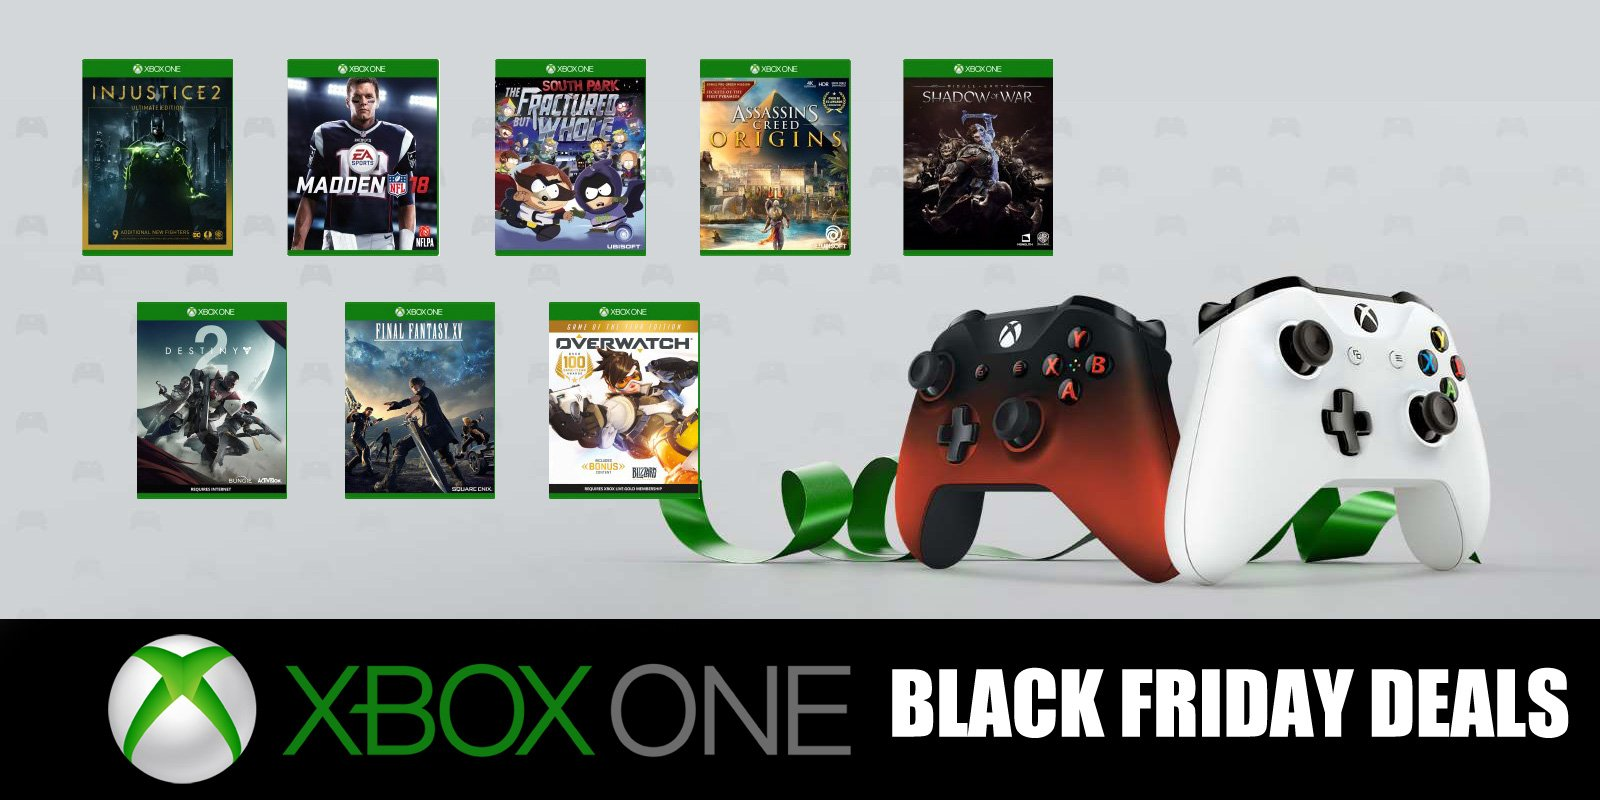 The best Xbox One Black Friday deals from games to console screenshot